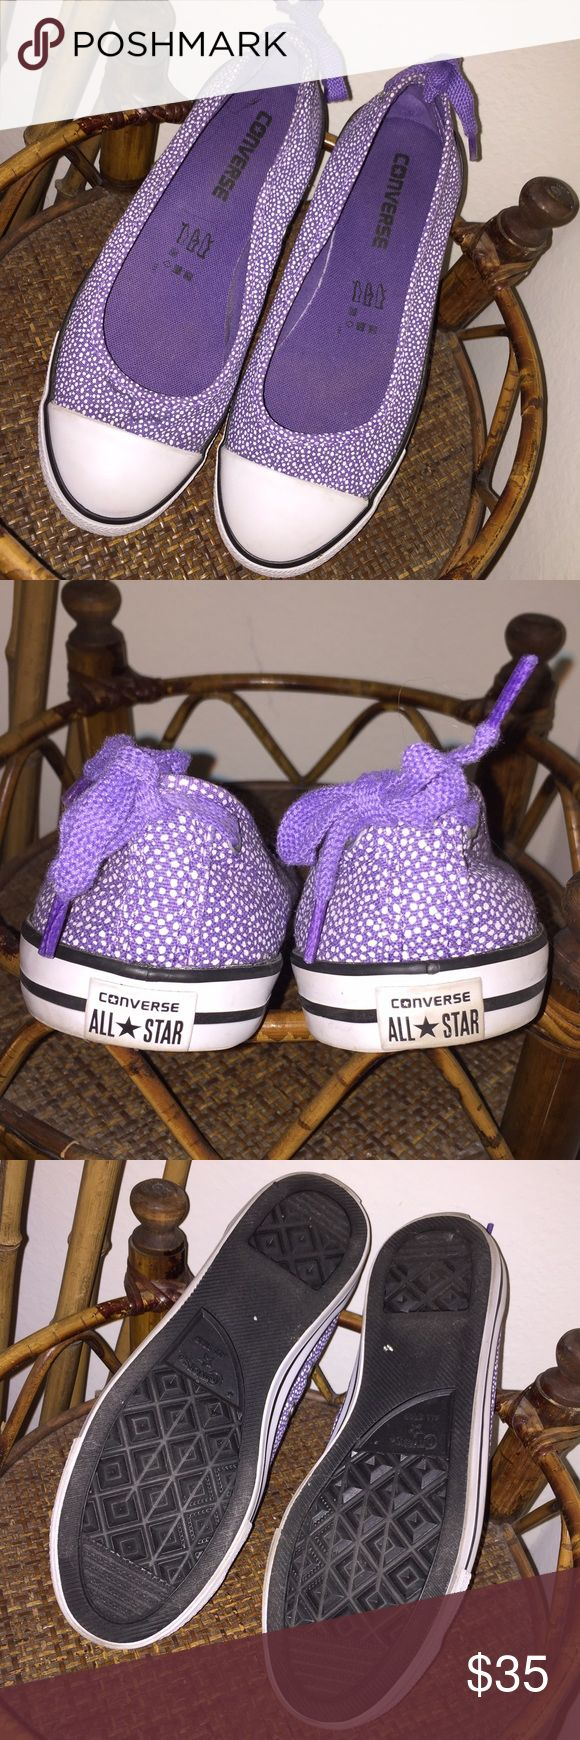 Converse Ballerina Flats ⬇️PRICE DROP⬇️Converse Ballerina Flat in size 7 come in LIKE NEW condition! Only worn once. Sold out everywhere!!! Super flirty and feminine purple and white ballet style flats with shoe string tie bow at the heels. In almost perfect condition! The right toe's fabric has a pattern in it but only noticeable when looking for it. Such a great shoe!❤️ Converse Shoes Flats & Loafers